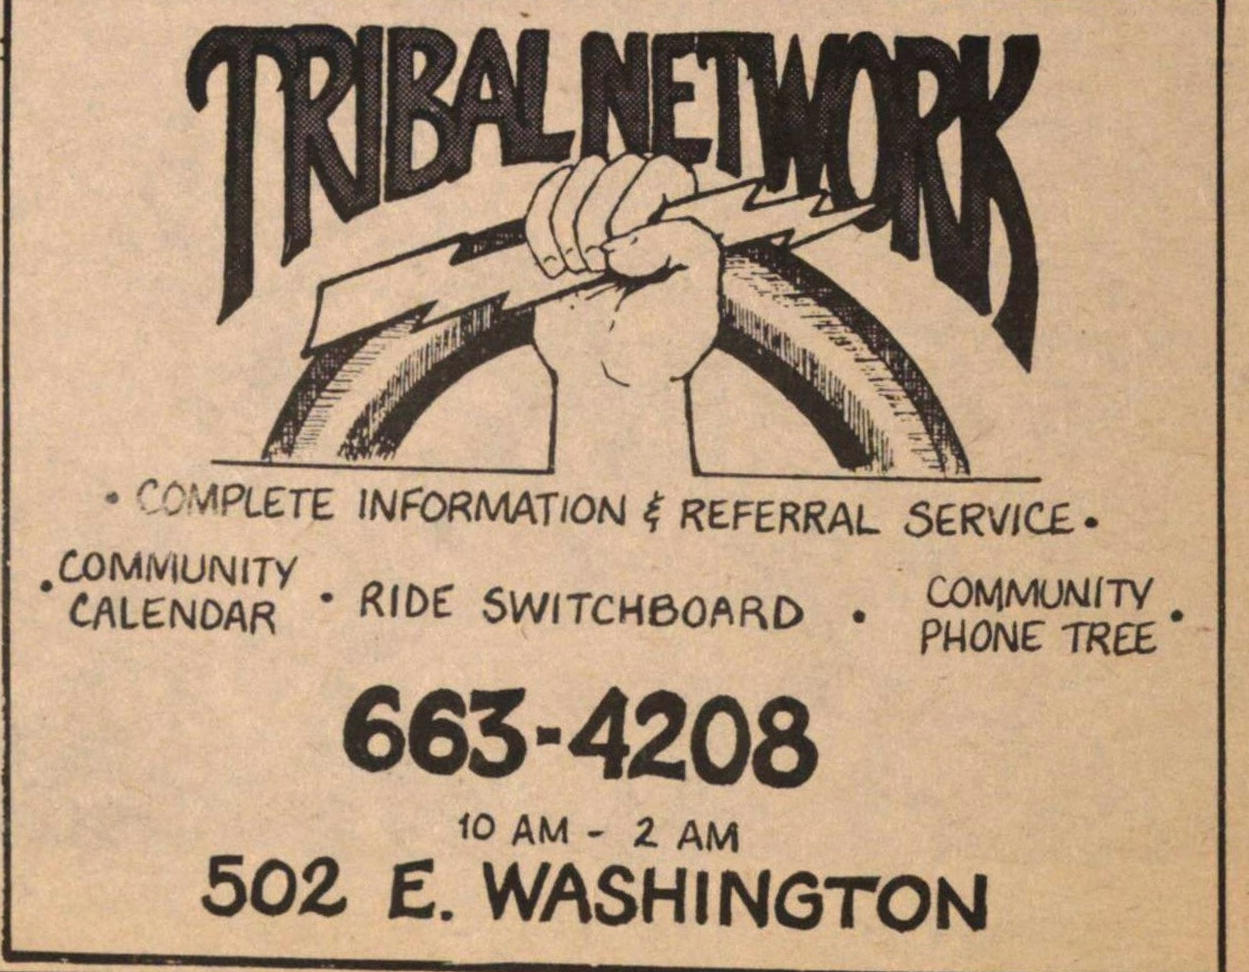 Tribal Network image